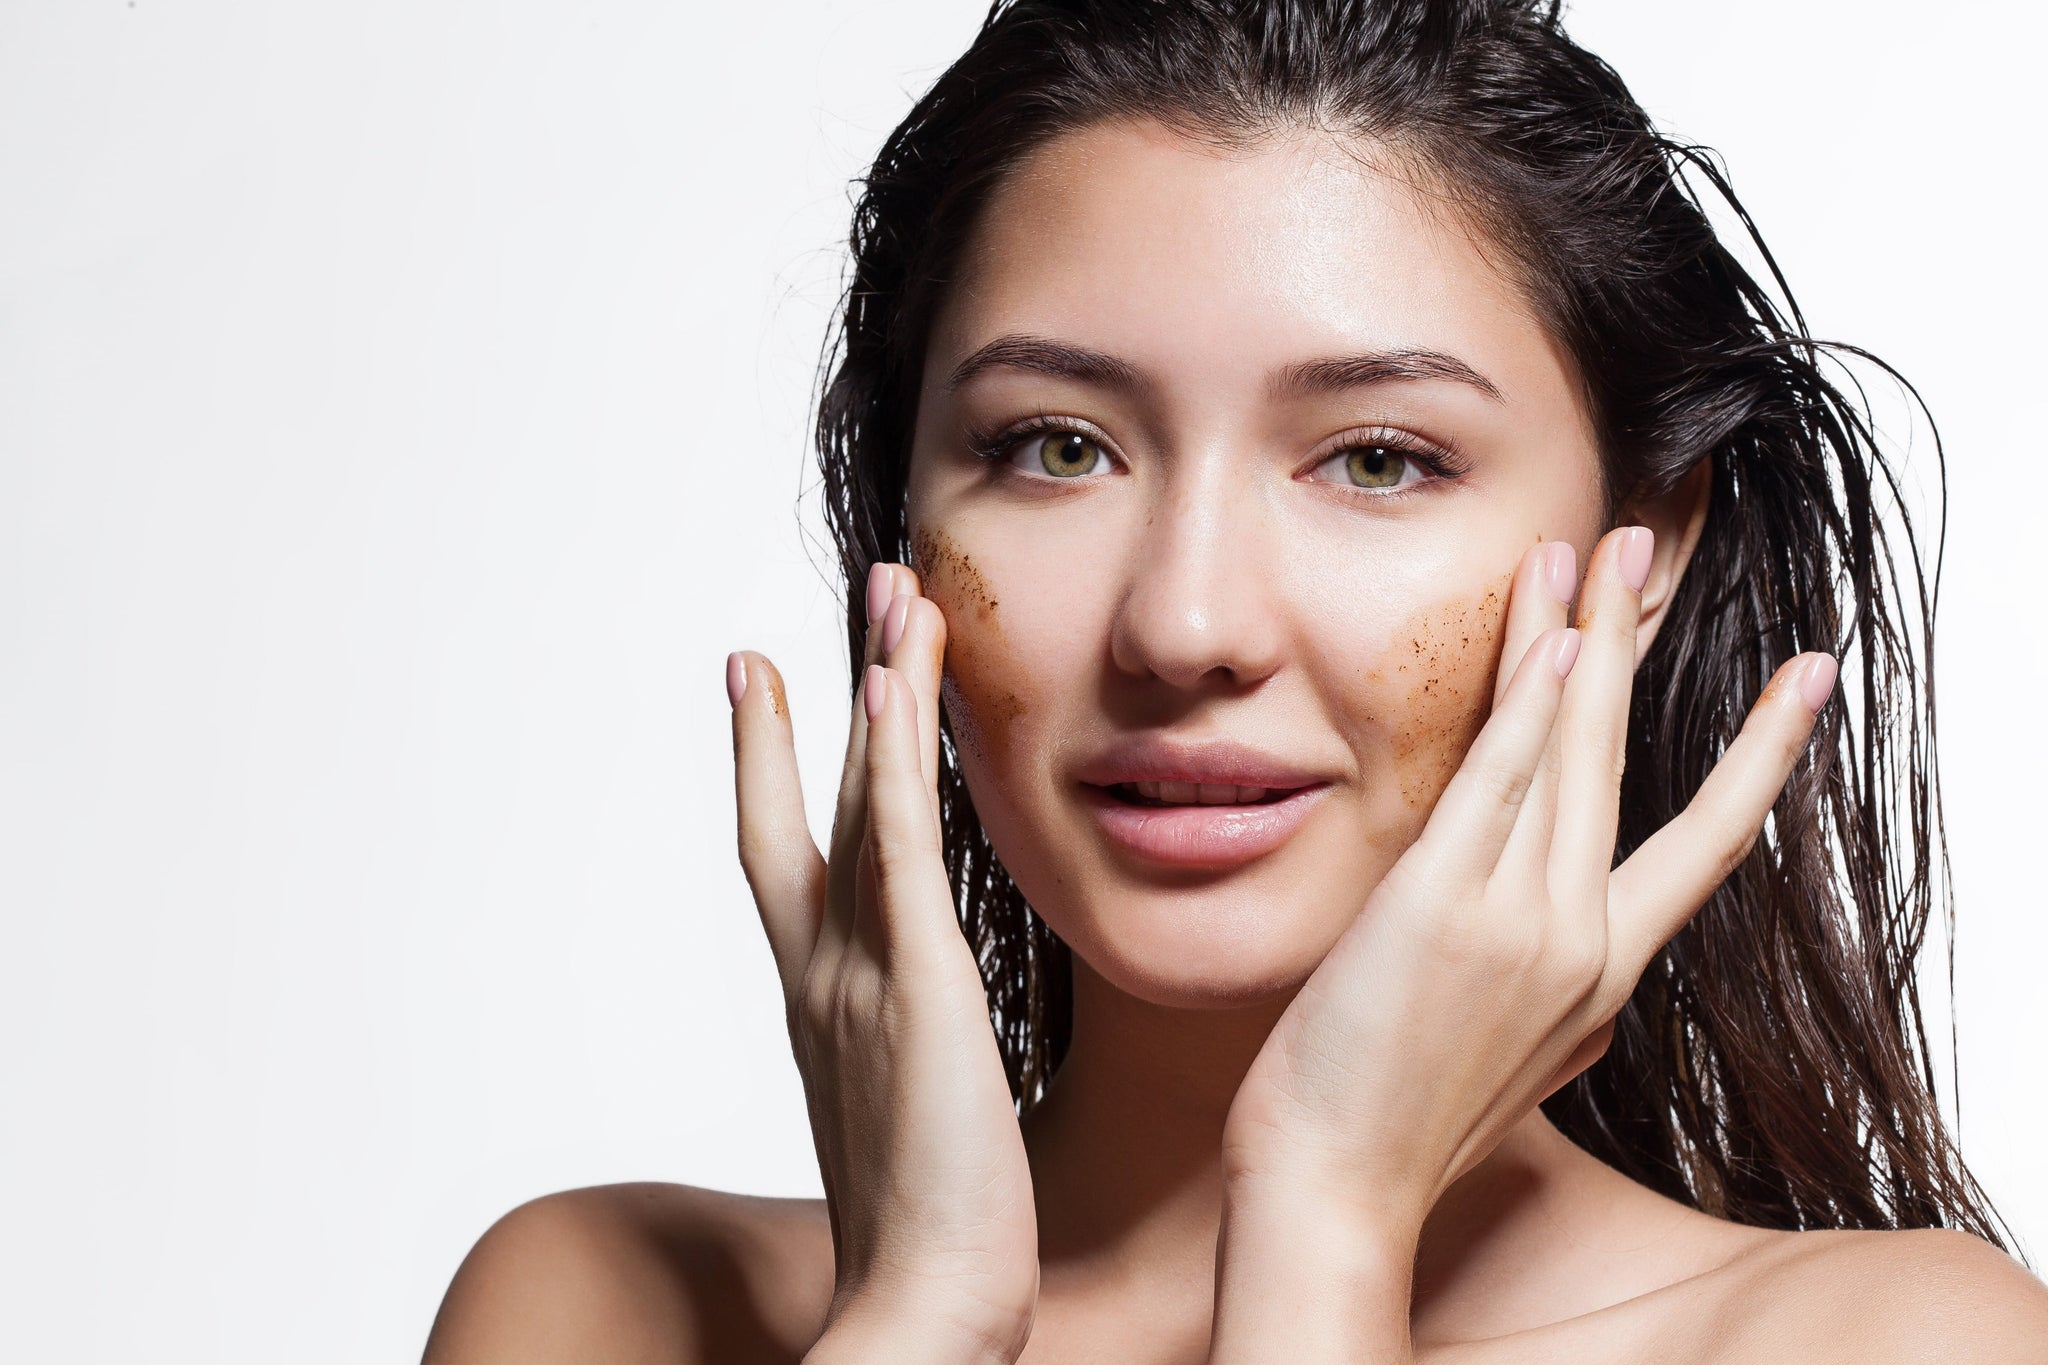 AHA vs. BHA for a Skin Exfoliant: Which Is Better and Why?